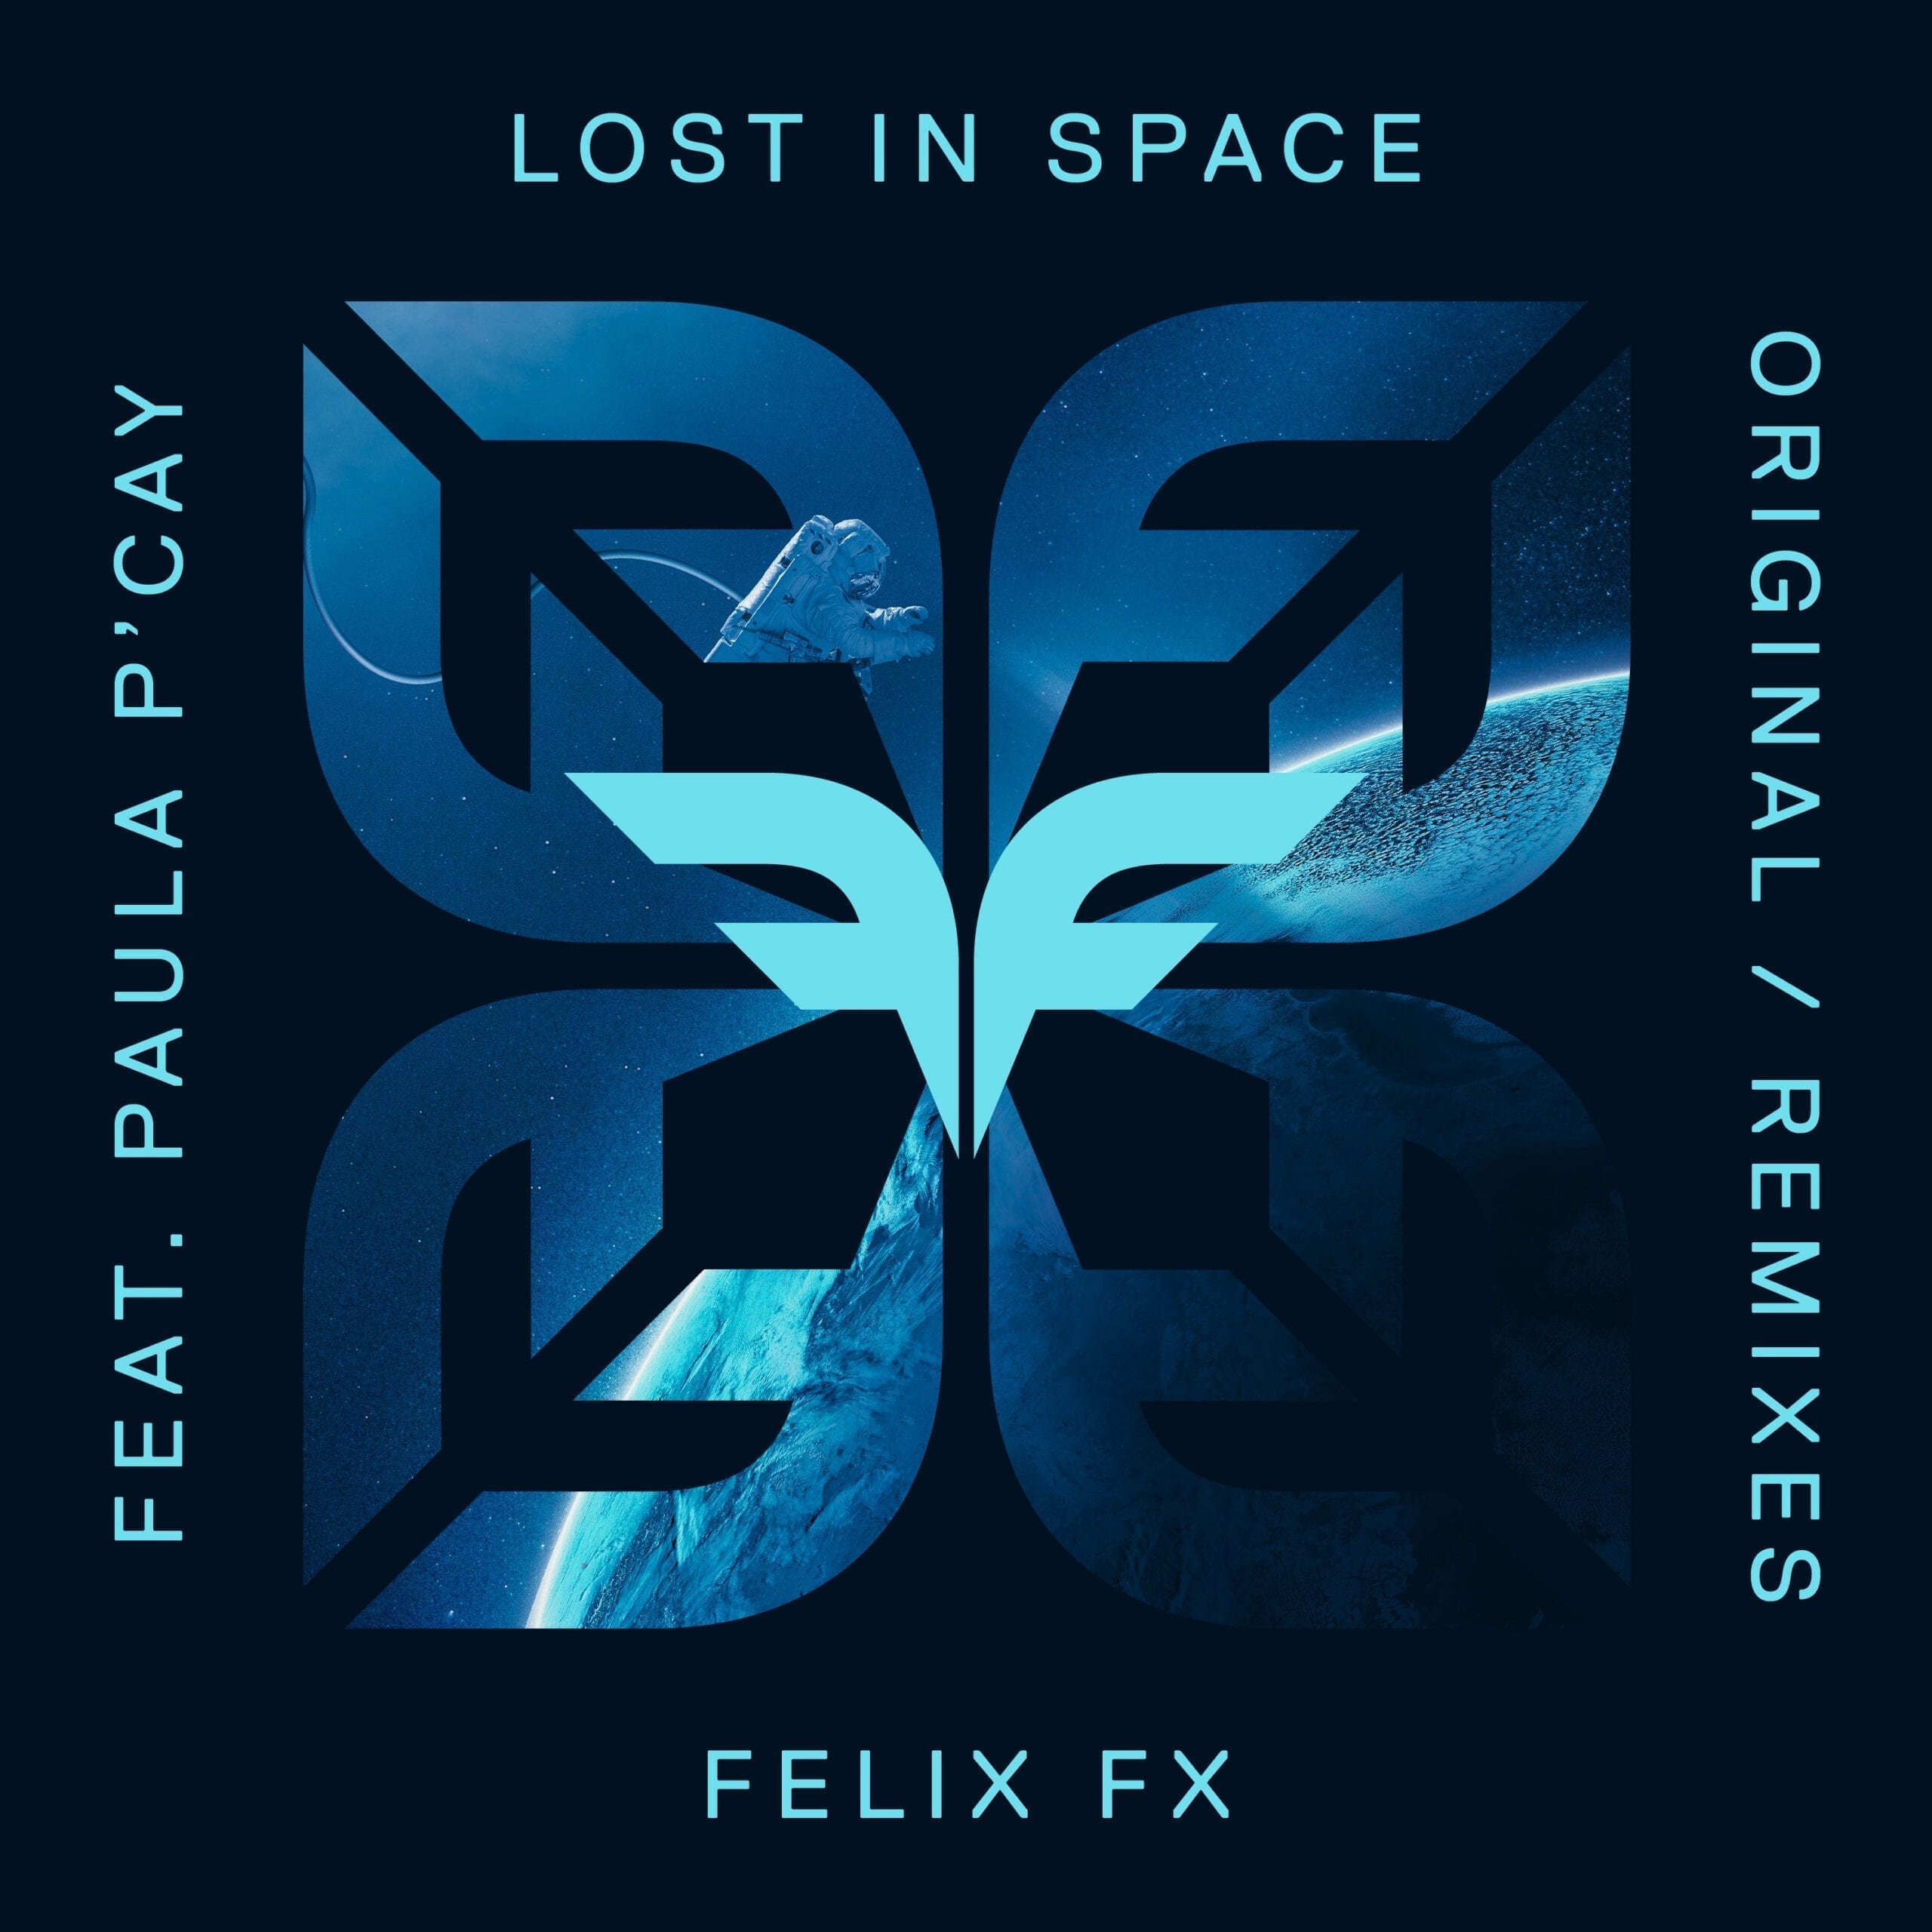 Felix FX – 'Lost In Space' feat. Paula P'Cay on Flemcy Music